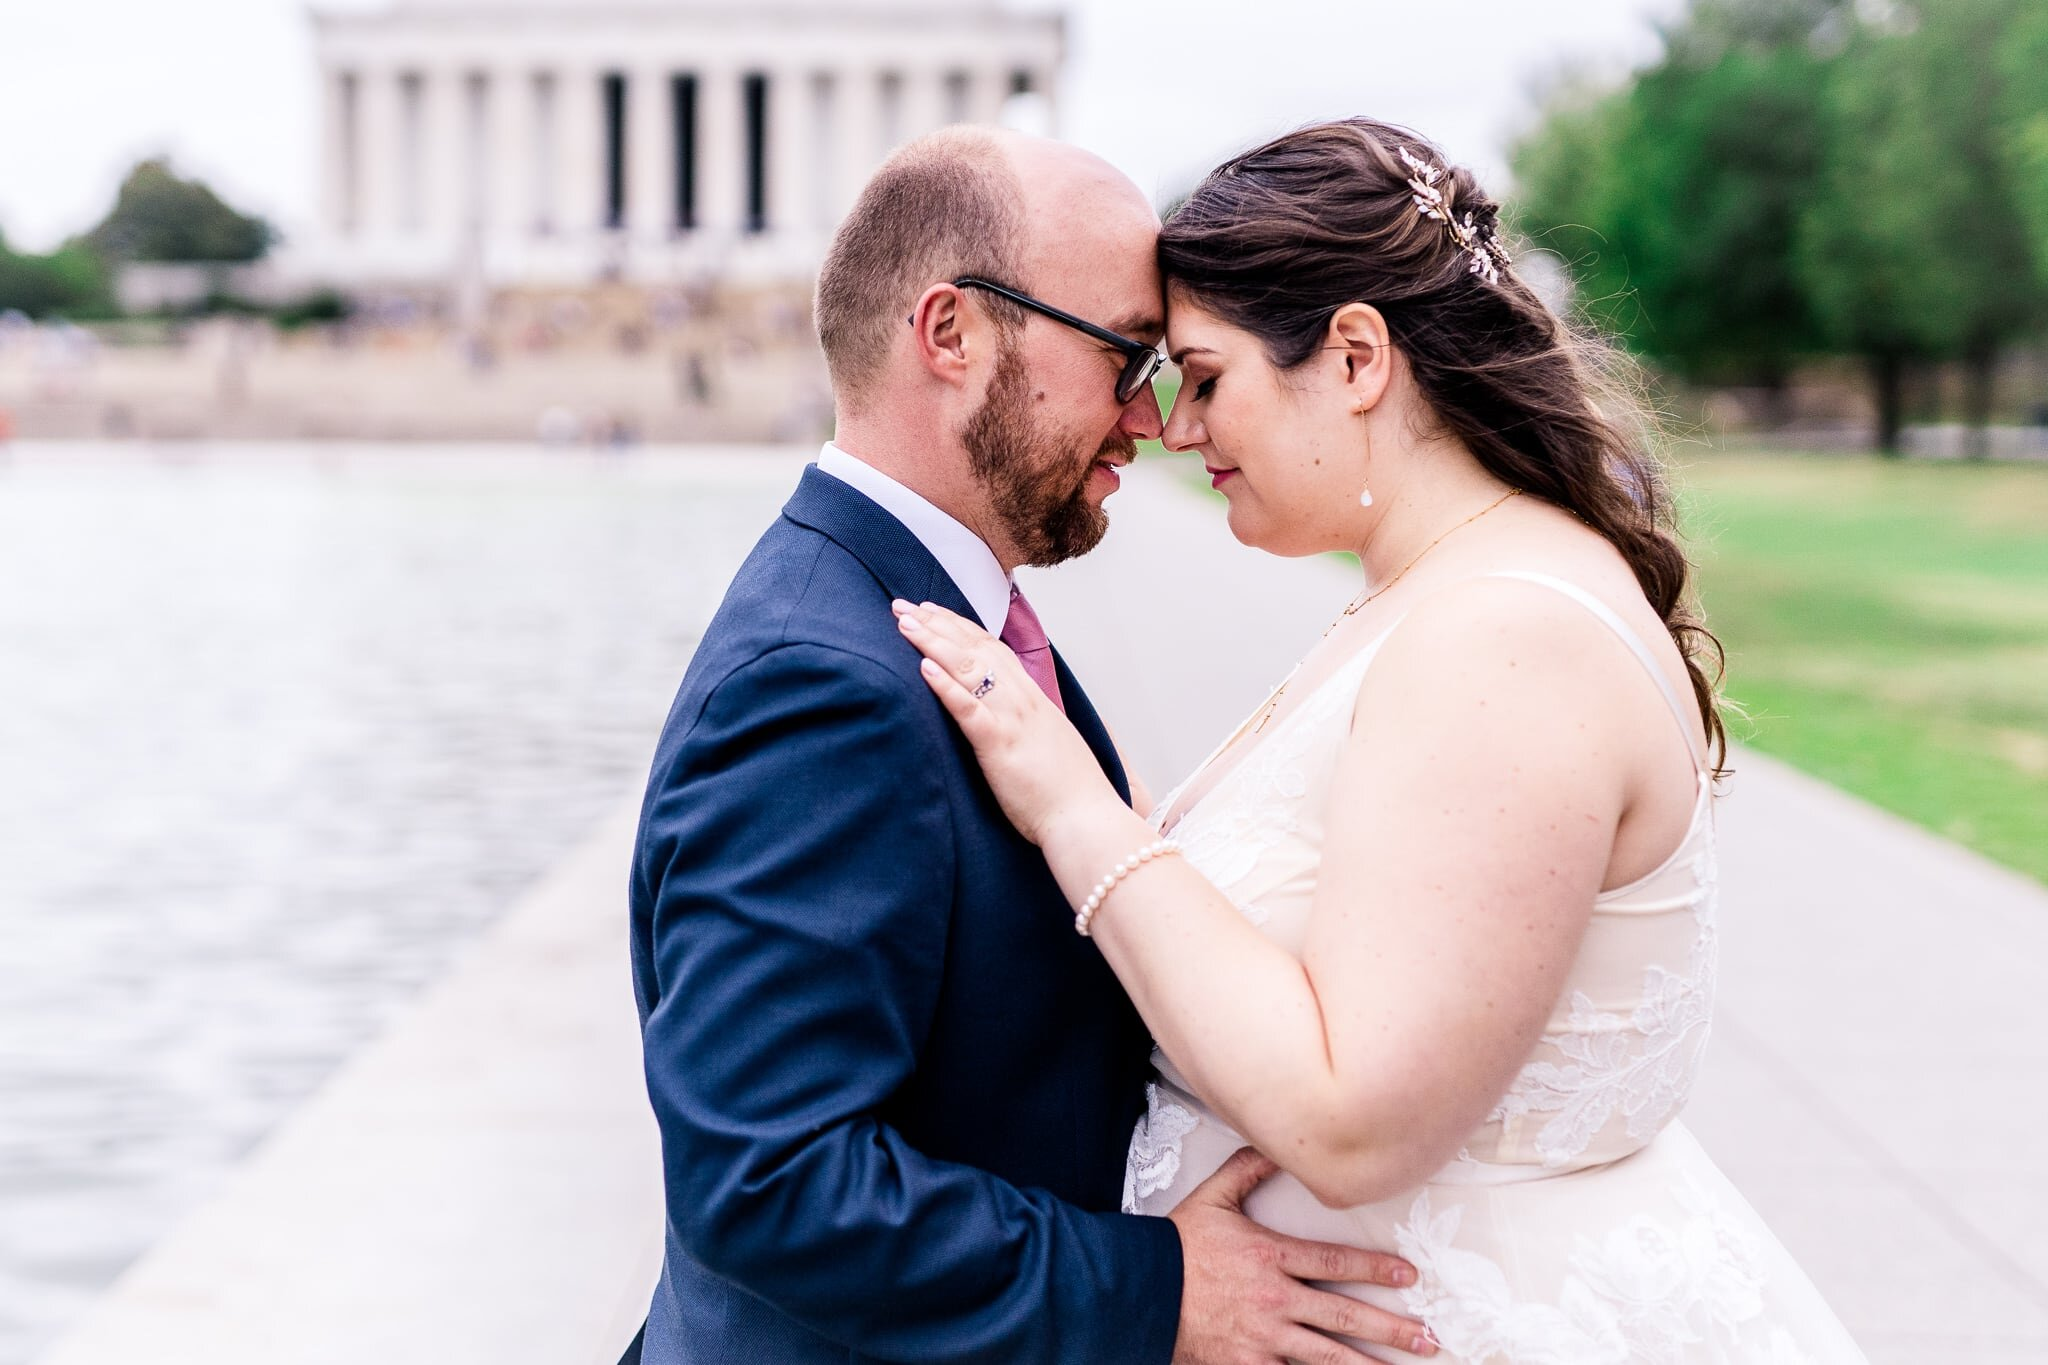 A bride and groom pose together with foreheads and noses together on their fall wedding day at the Reflecting Pool in front of the Lincoln Memorial in Washington, DC